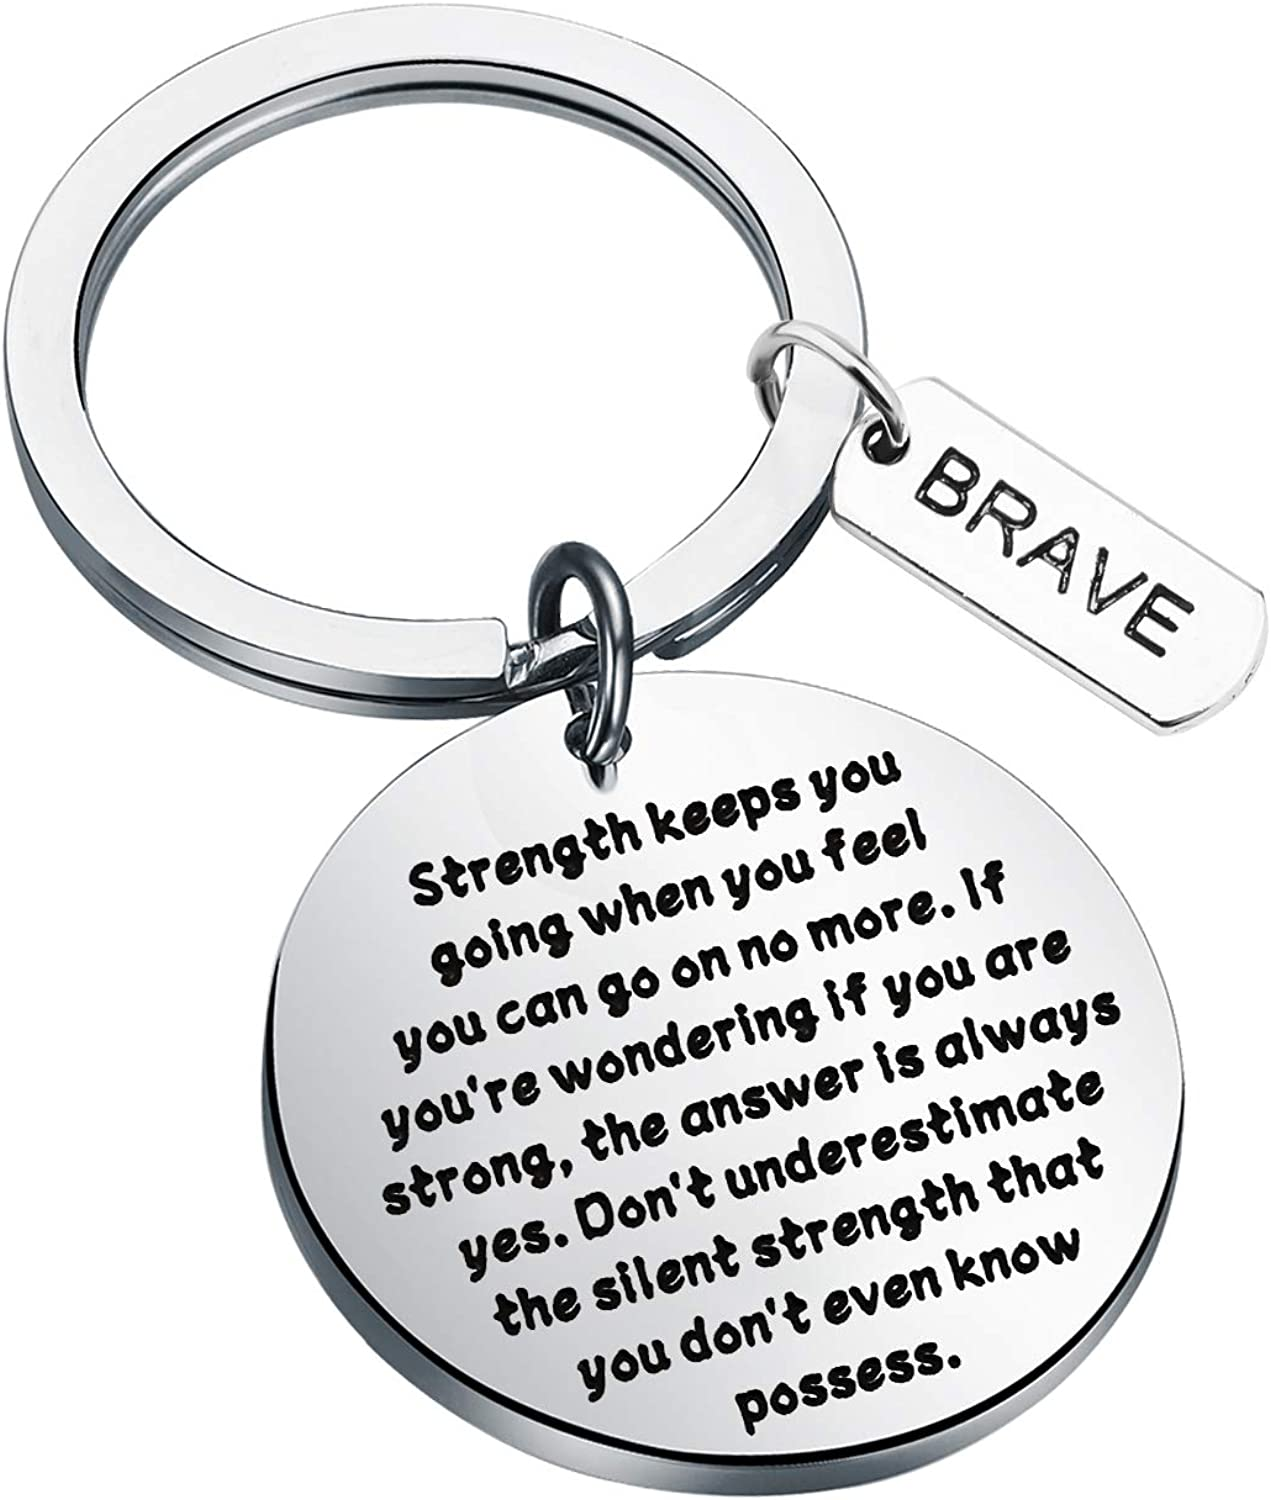 AKTAP/Inspirational/Gifts/Recovery/Gift/Don/'t/Underestimate/The/Silent/Strength/That/You/Don/'t/Even/Know/Possess/Keychain/Warrior/Gift/Graduation/&nbs